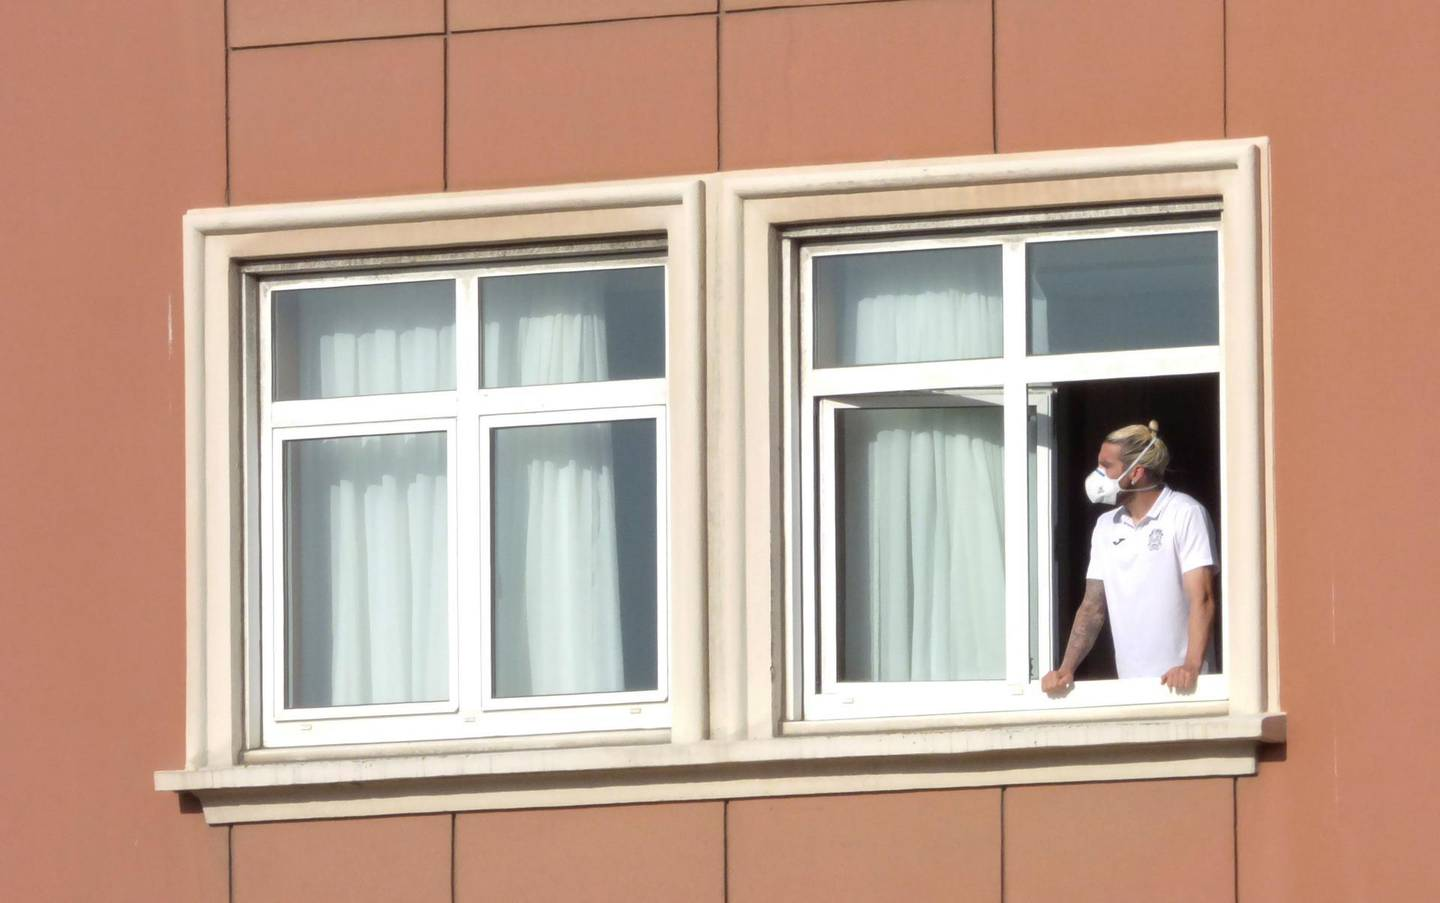 epa08559822 Spanish Second Division's CF Fuenlabrada team player Chico Flores looks from his room's window at the hotel where the team is confined in A Coruna, northwestern Spain, 22 July 2020. Six members of the team tested positive for COVID-19.  EPA/CABALAR